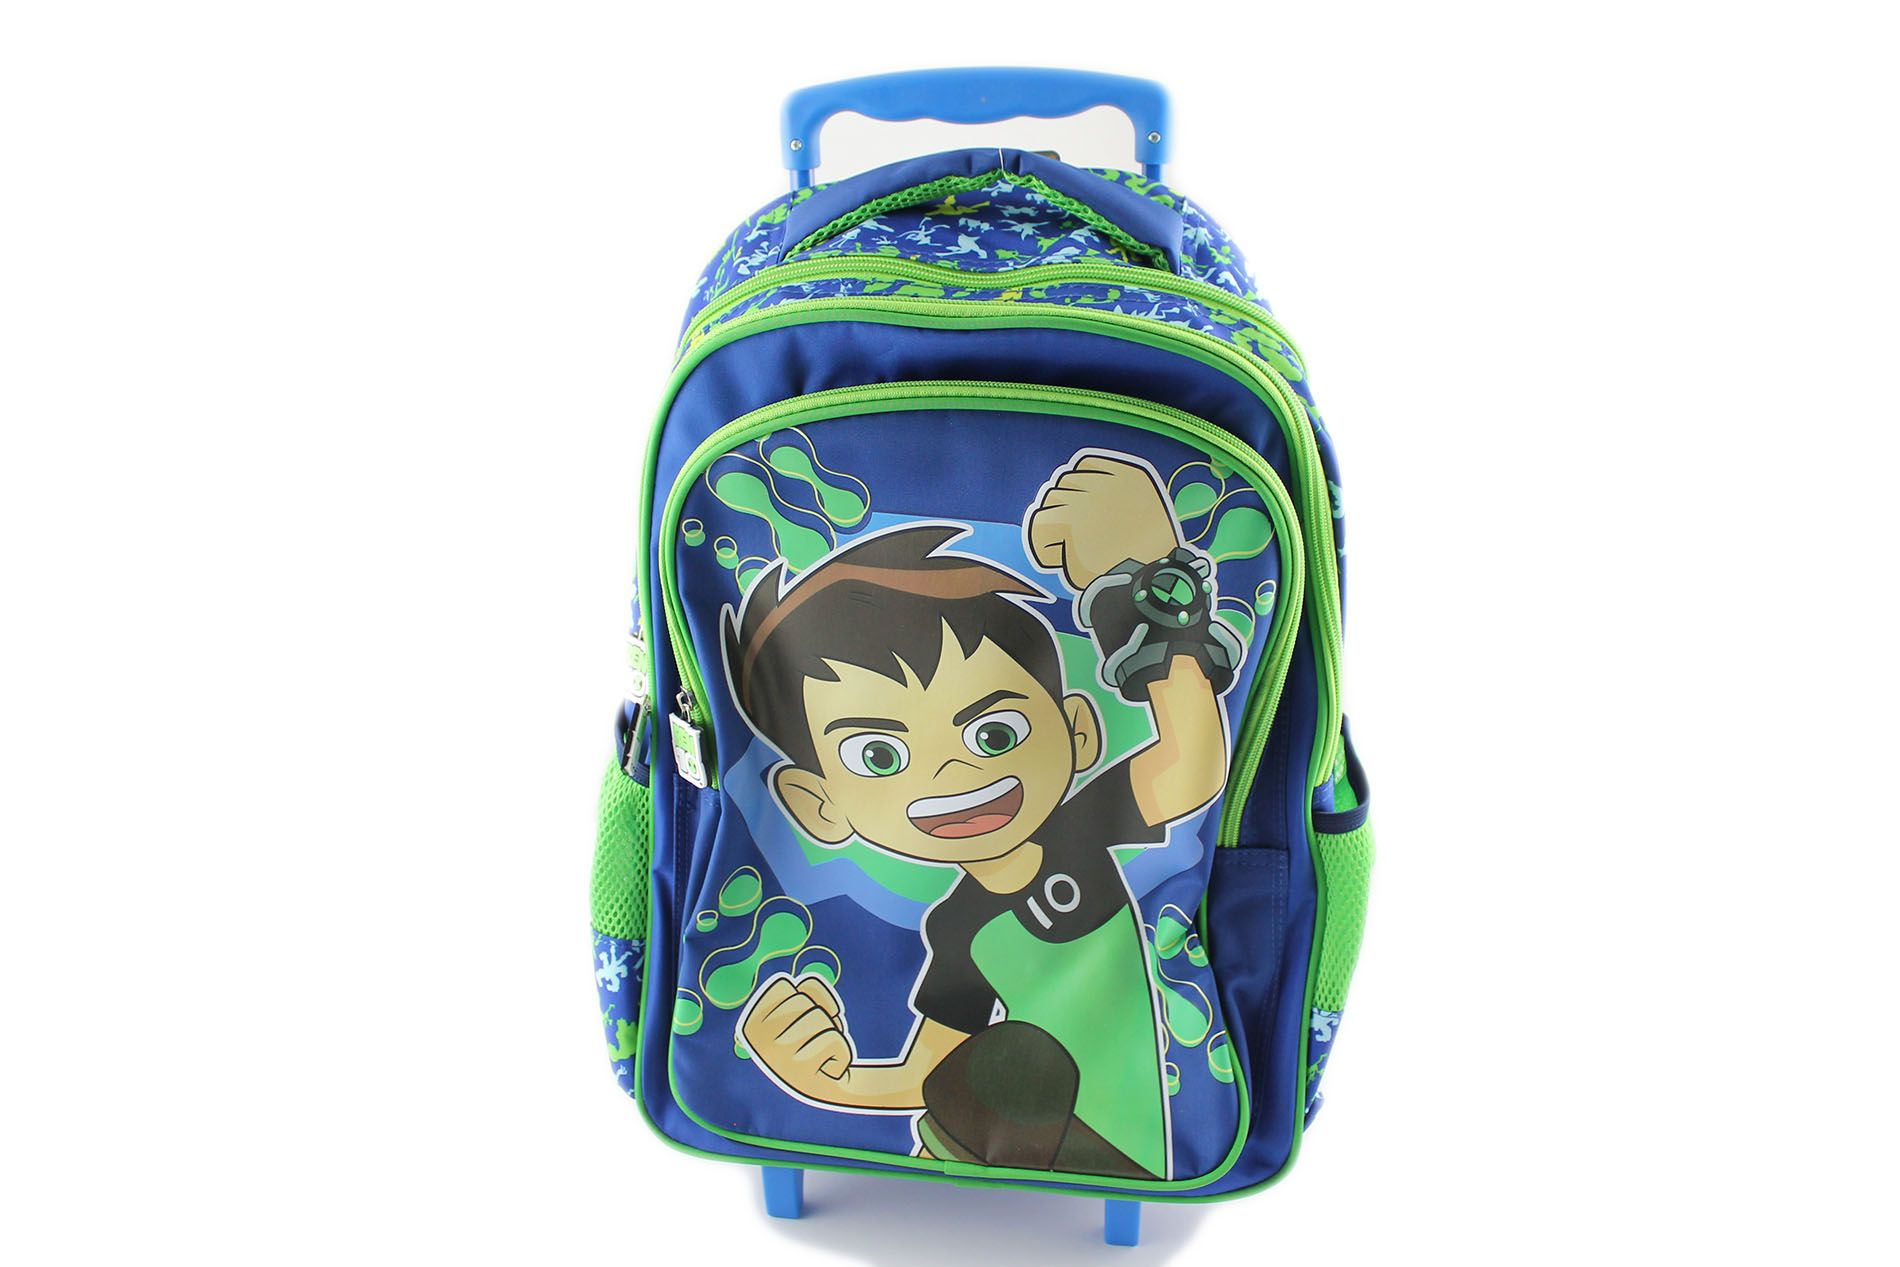 Ben 10 back to school backpack